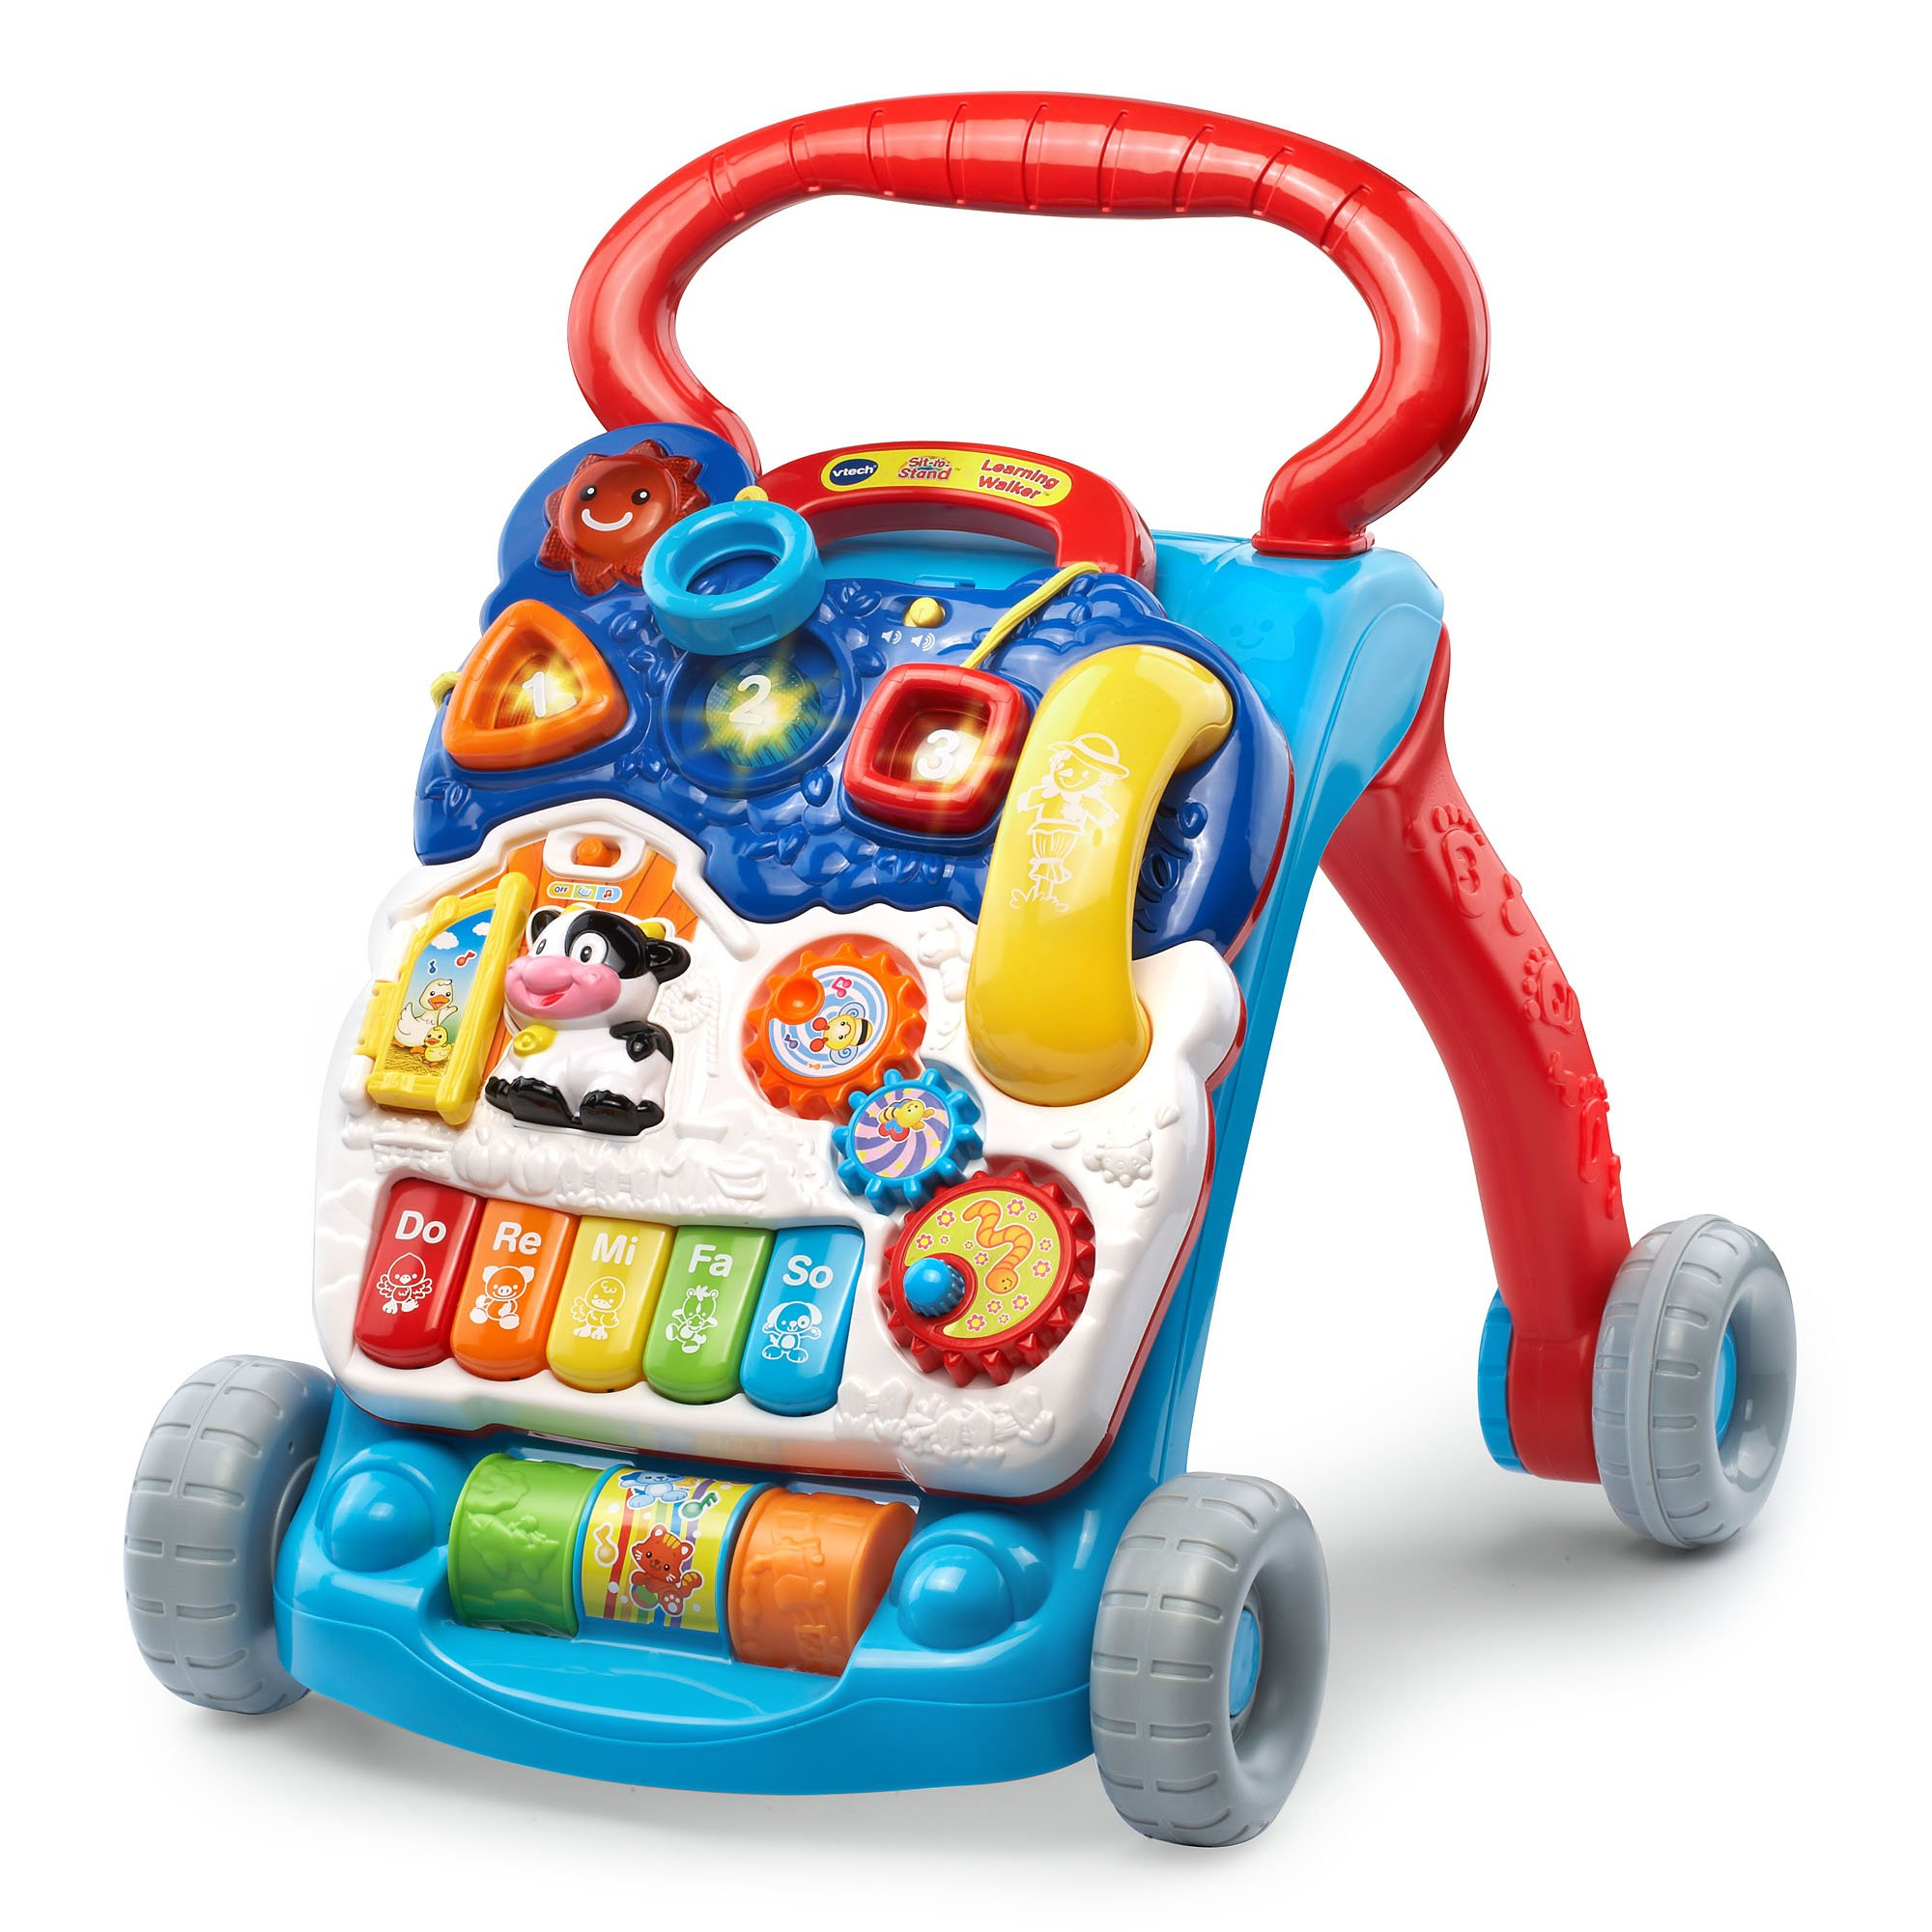 VTech Sit-to-Stand Learning Walker, Blue (Amazon Exclusive) by VTech